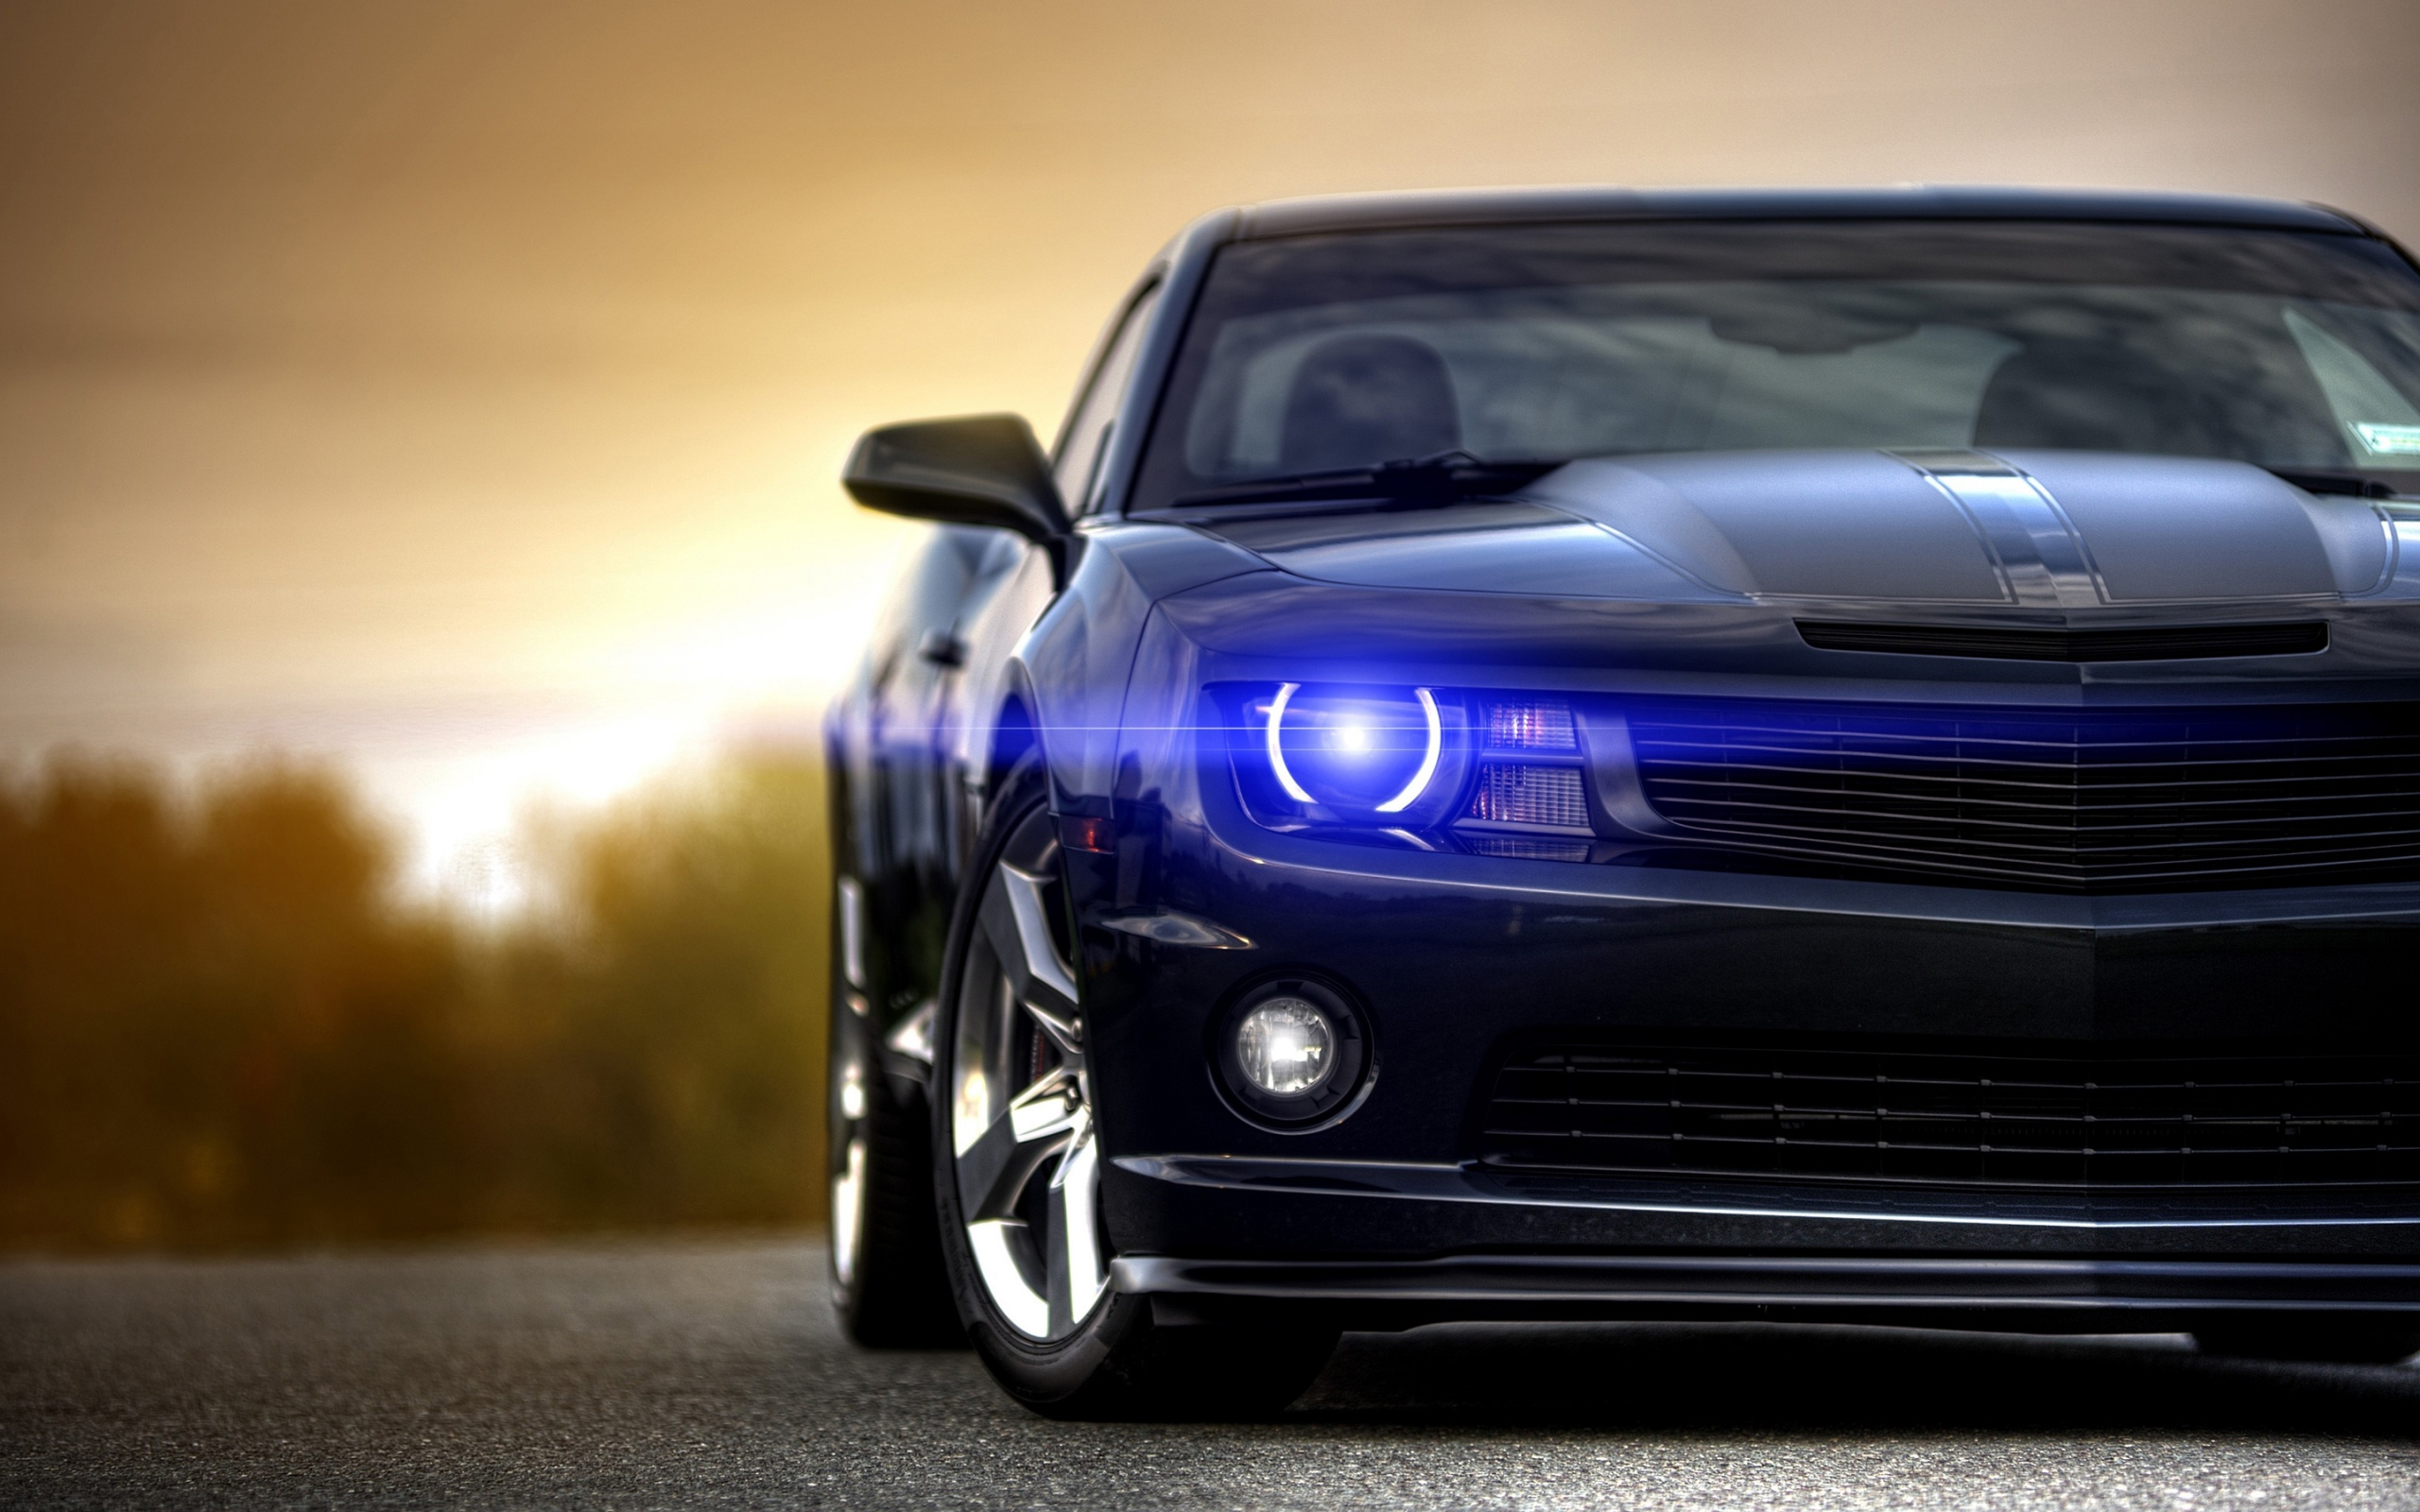 Chevrolet camaro muscle car wallpapers in jpg format for - Free camaro wallpaper download ...